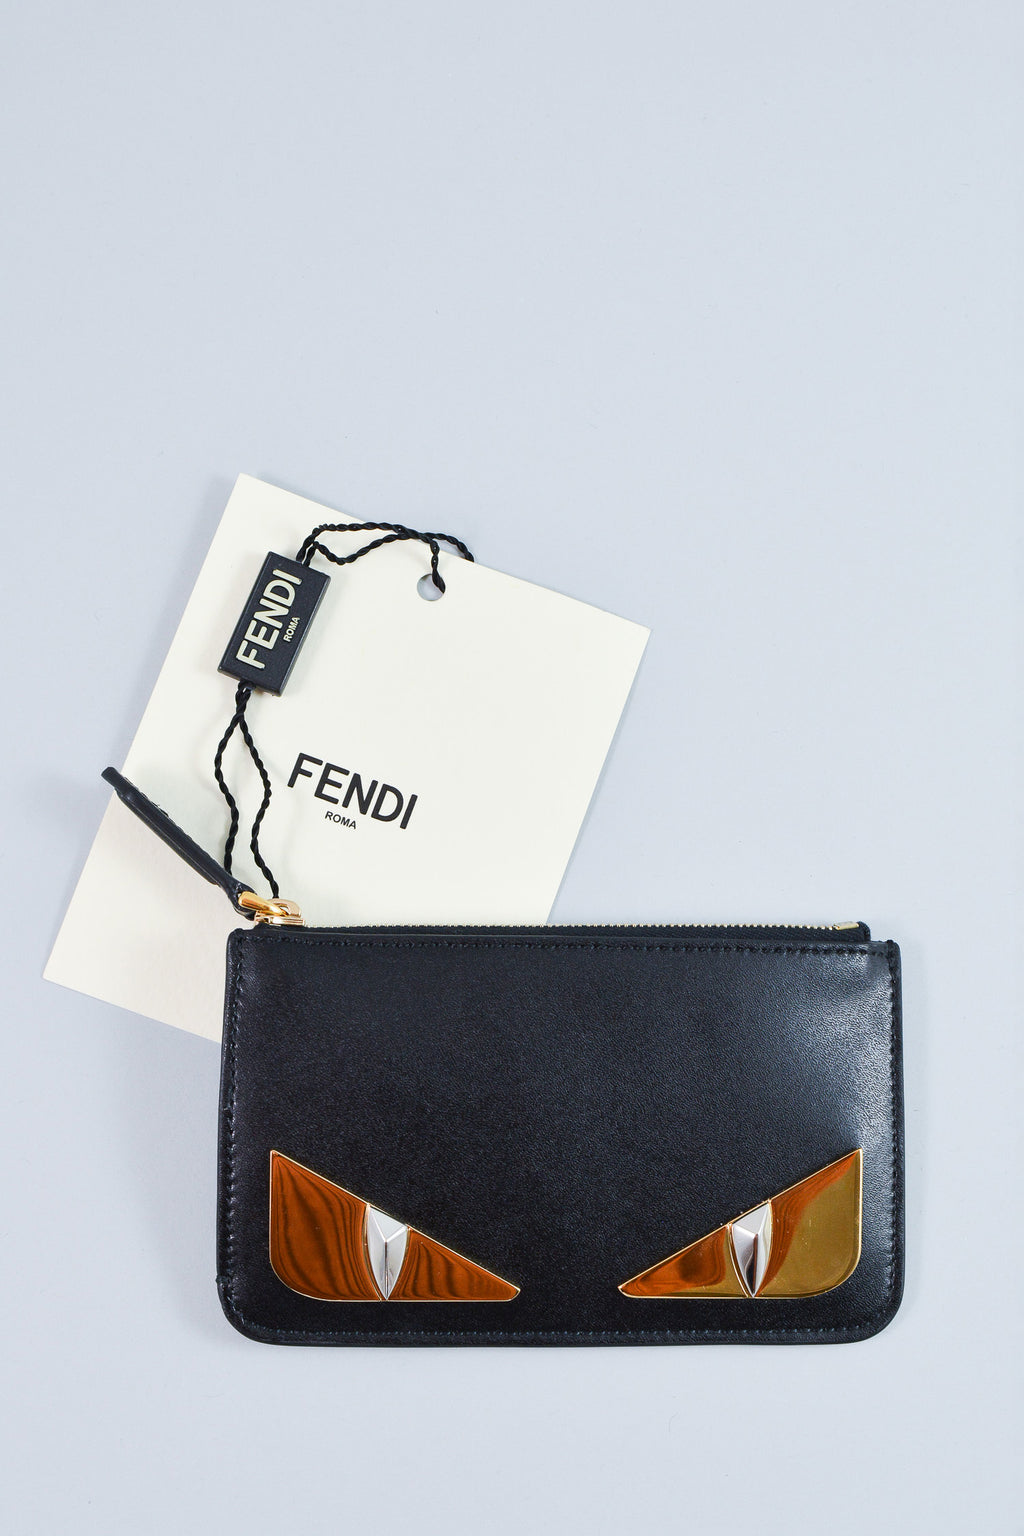 Fendi Black Leather Monster Key Pouch NWT